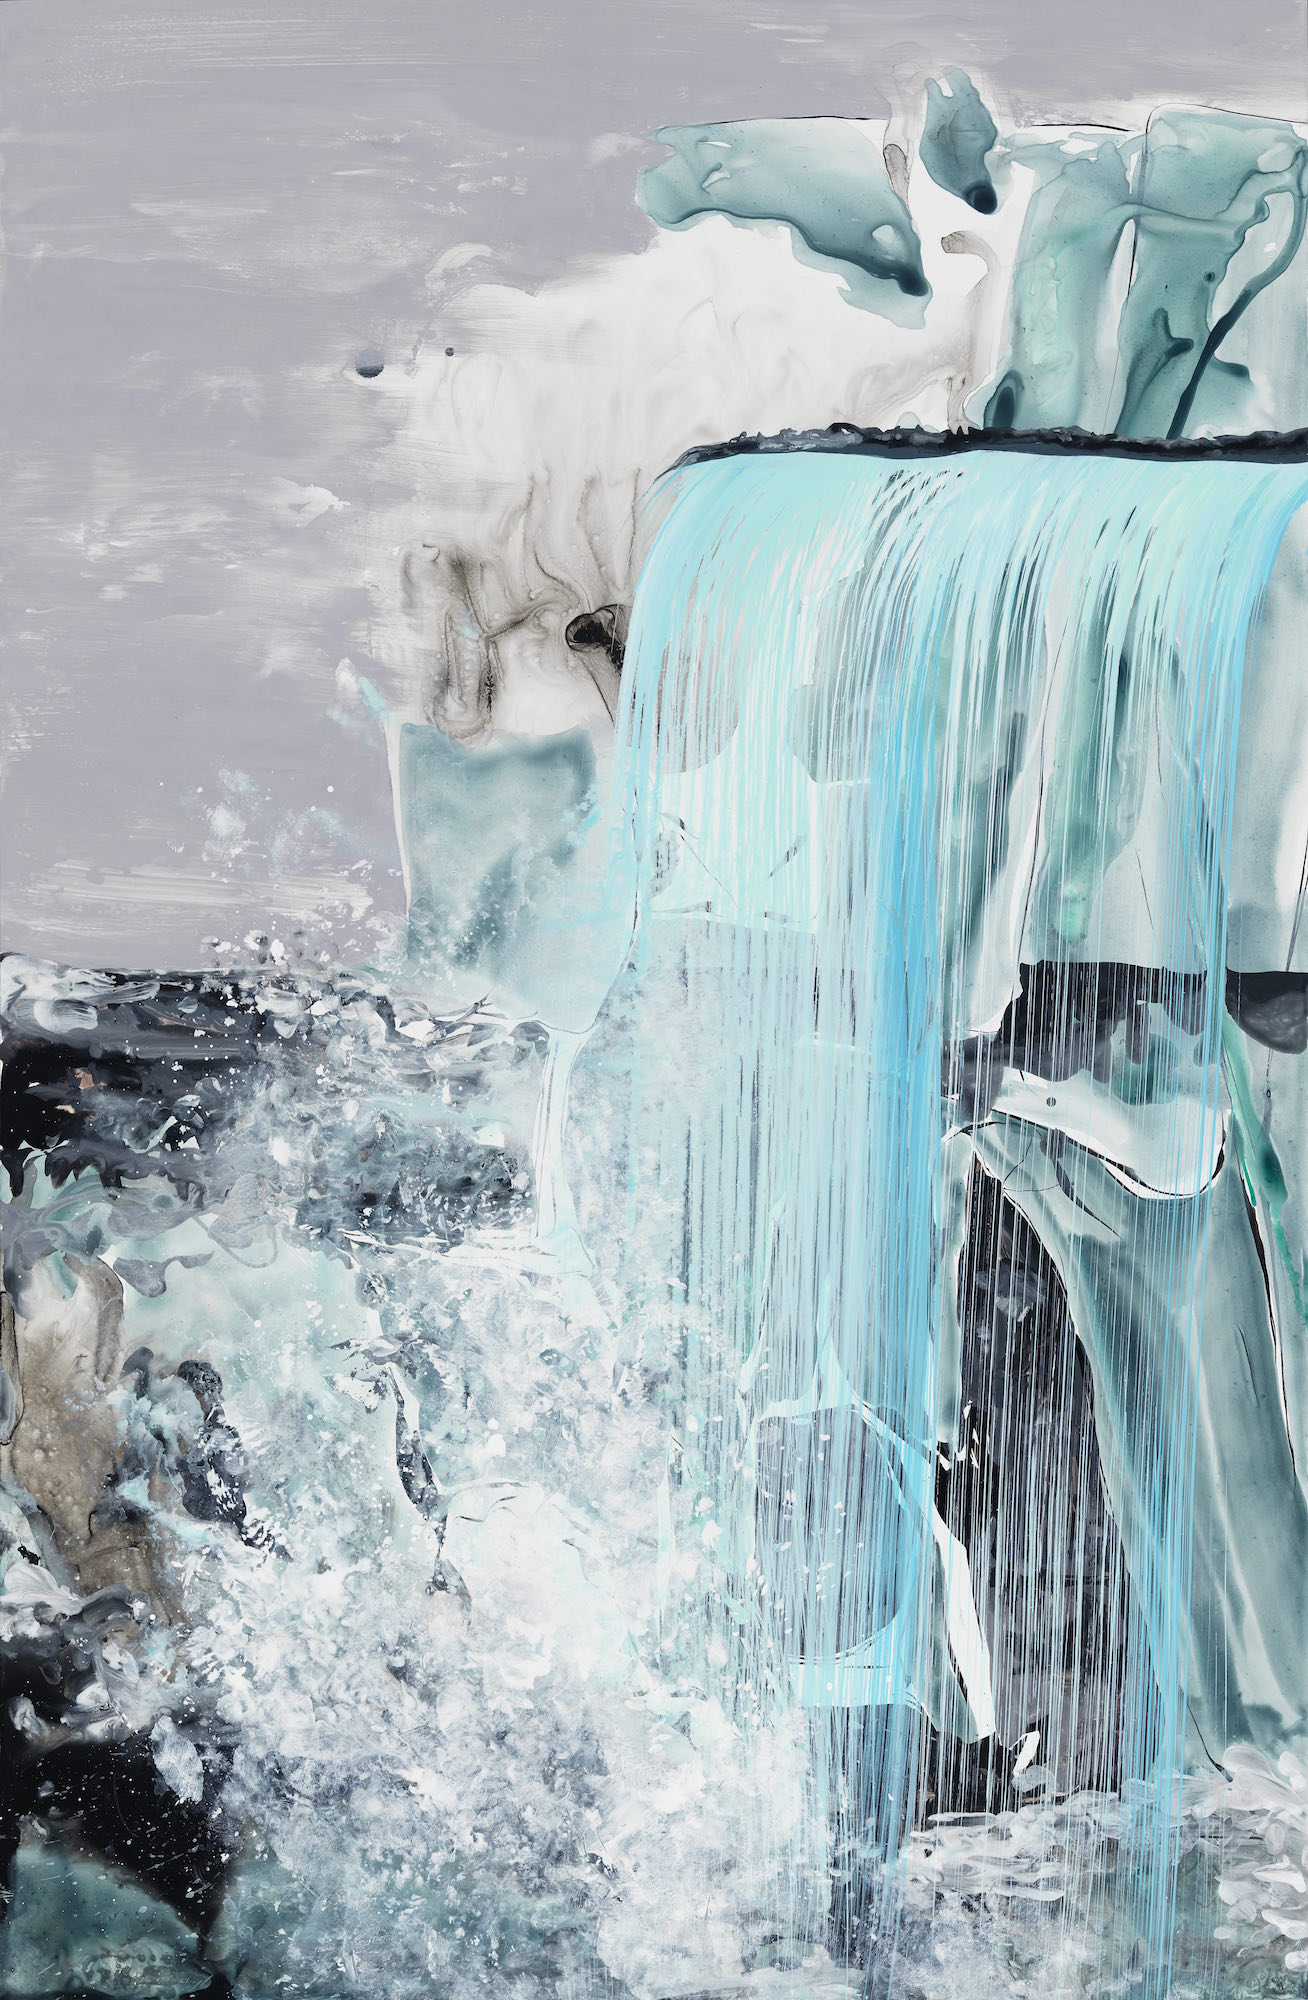 Kim Piotrowski, Still Niagara, 2015 acrylic ink on synthetic paper, 40 x 26 inches